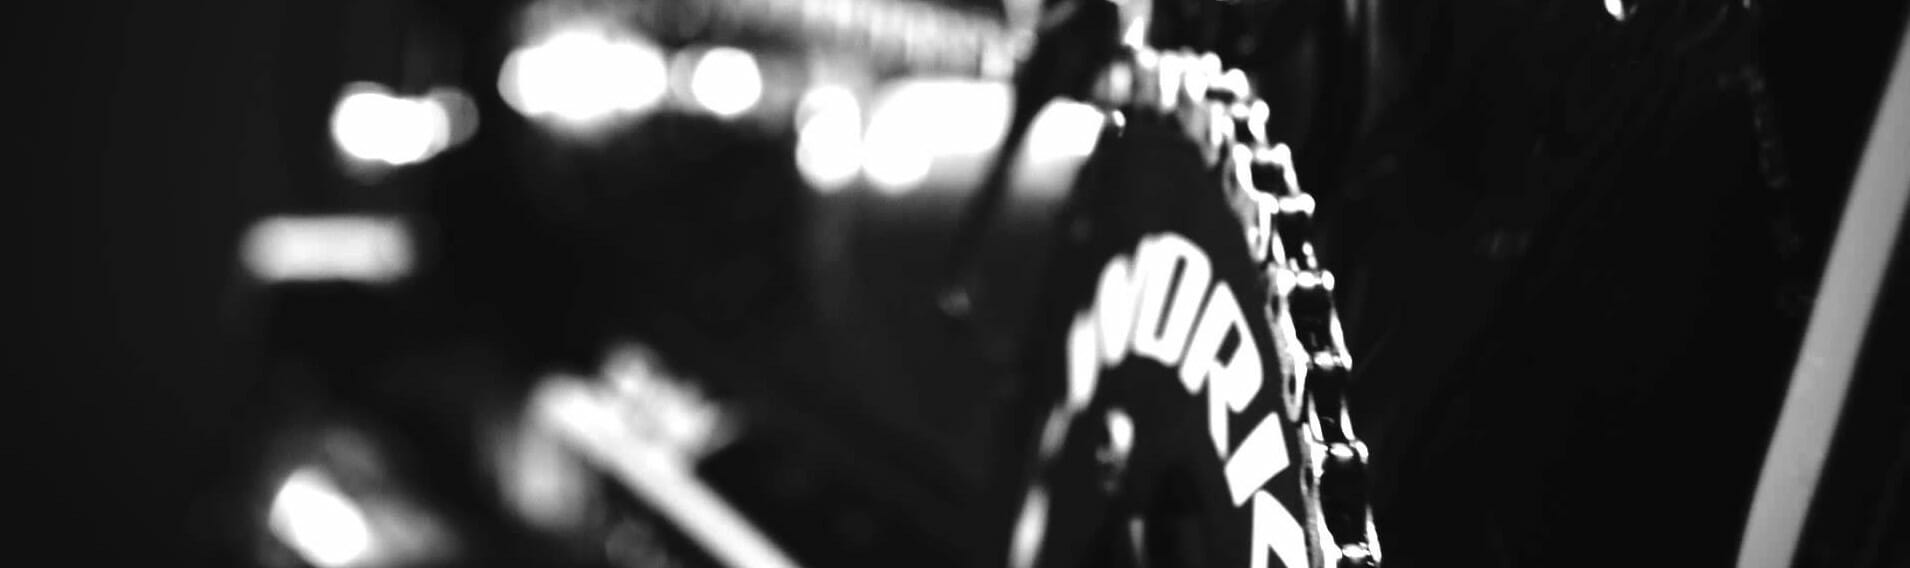 ISPP - without compromizes • Triathlon